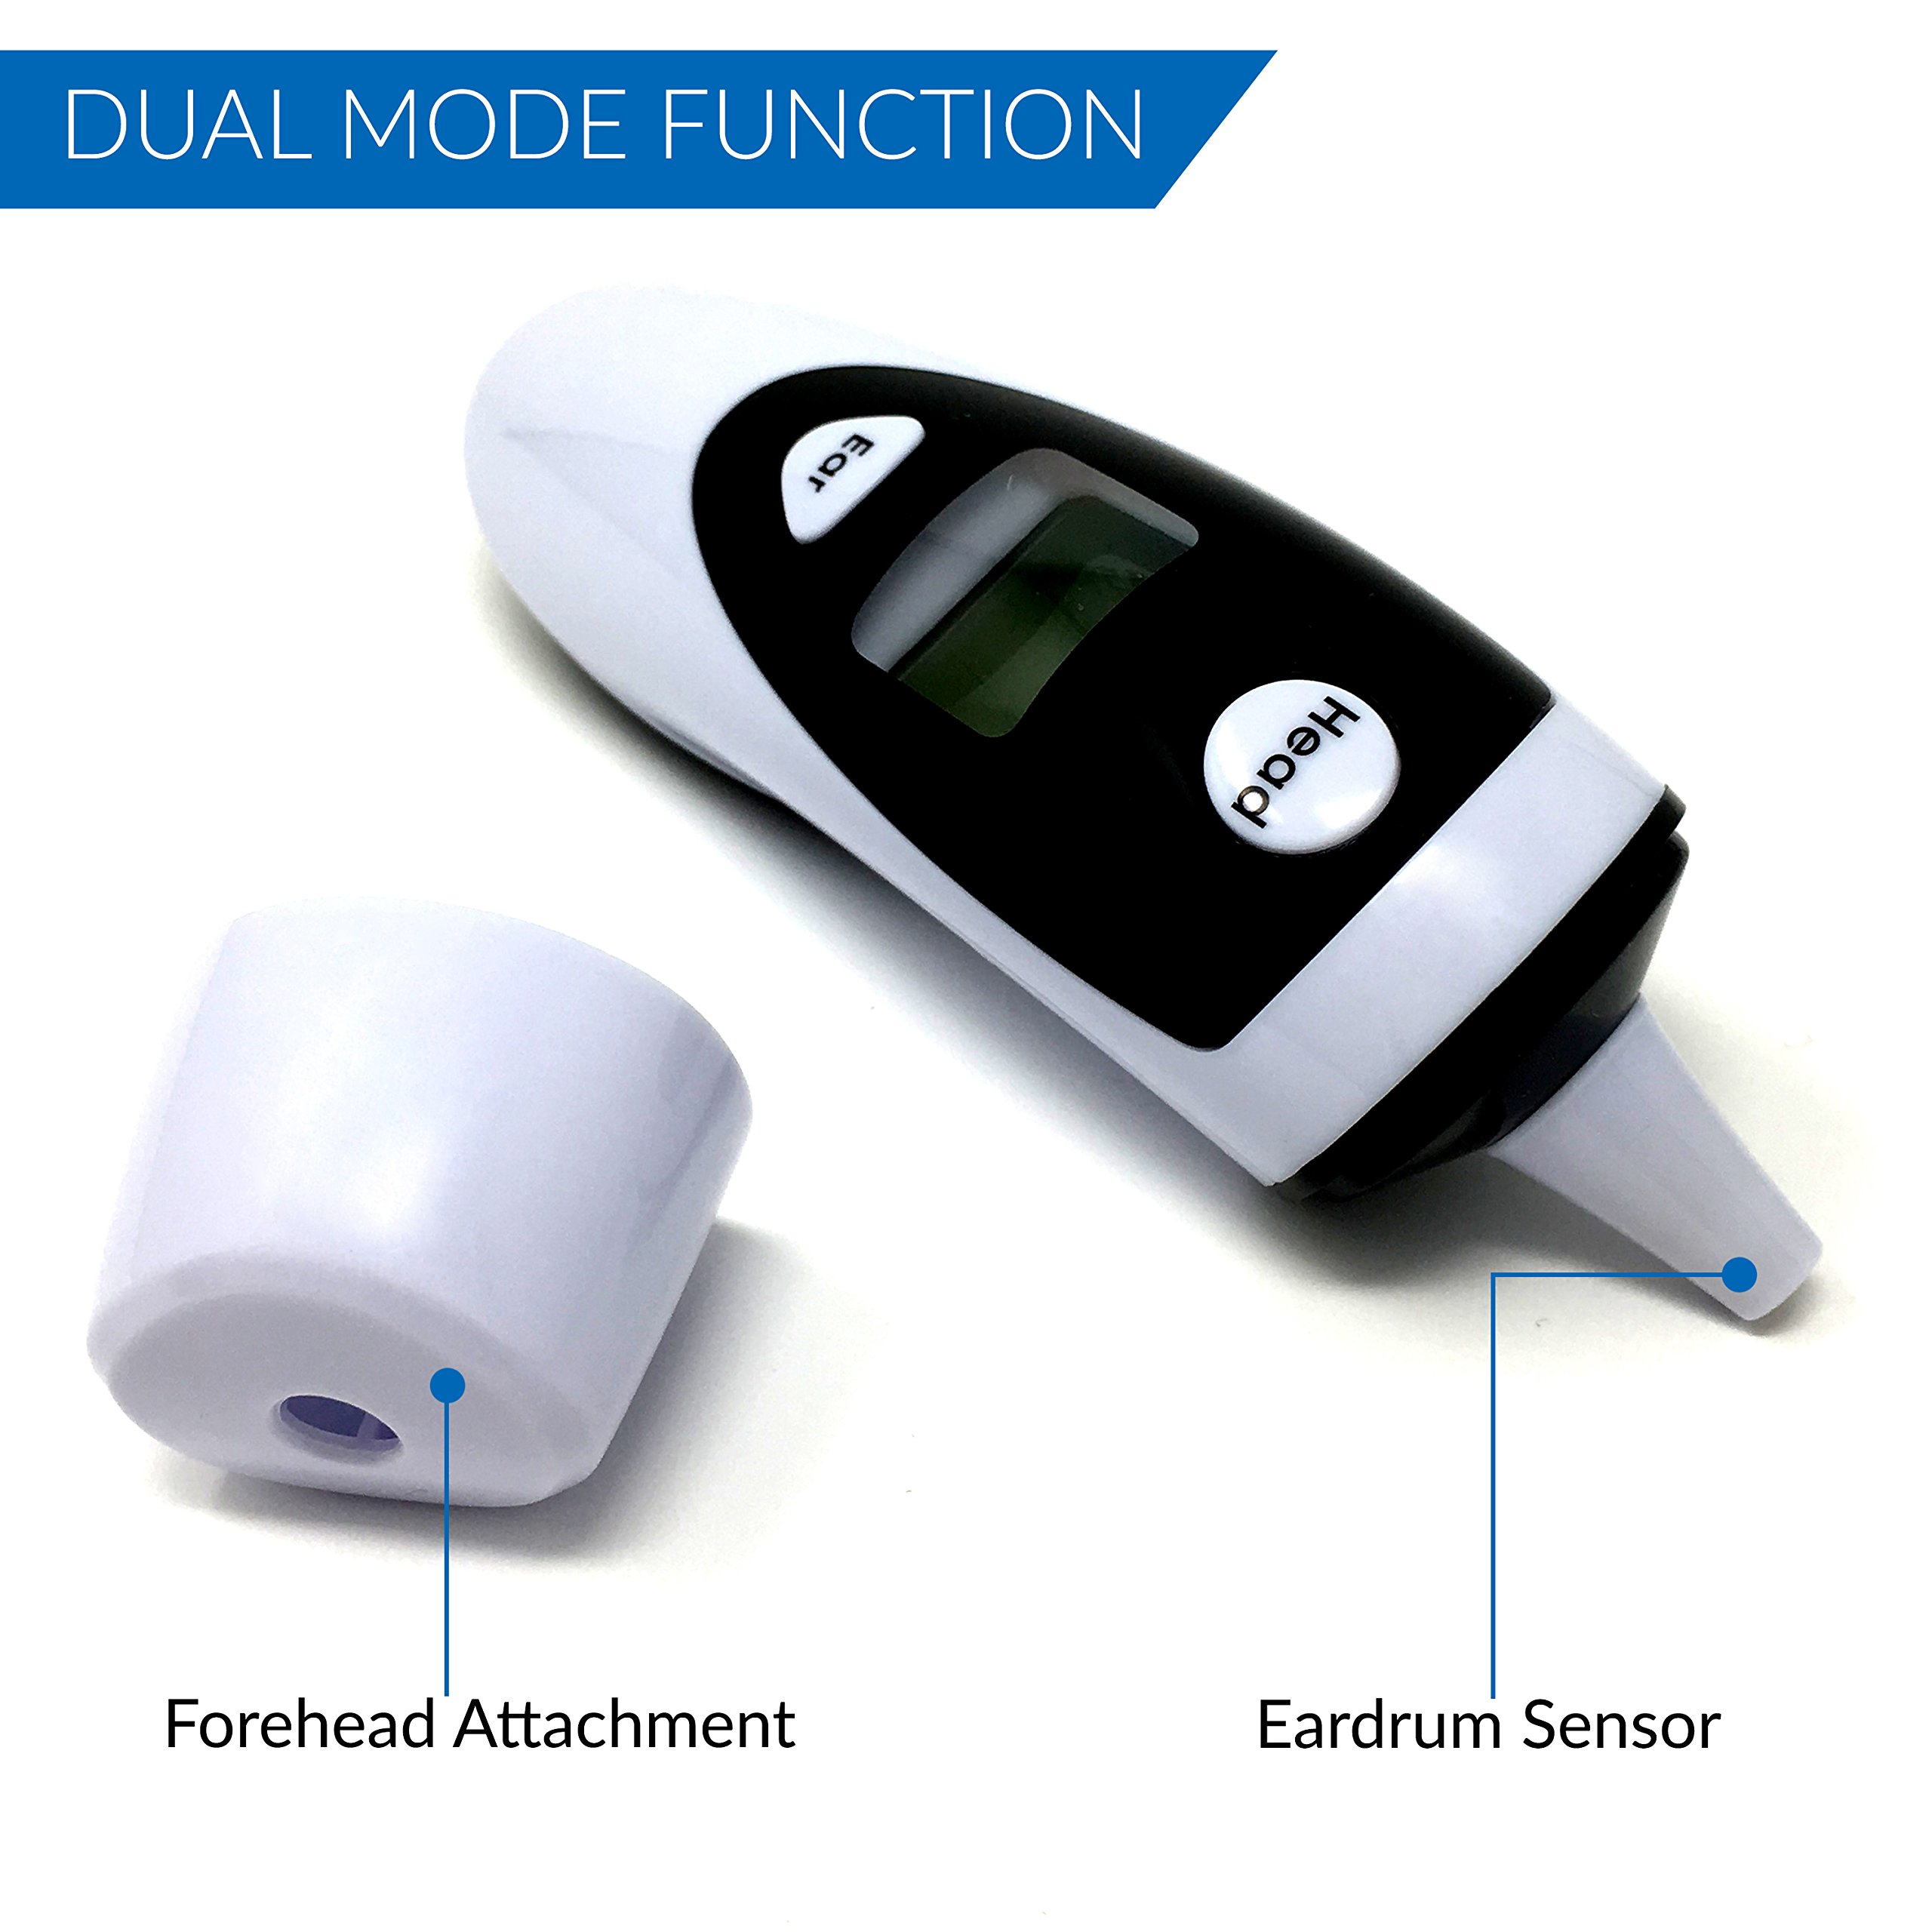 Champion IR - Medical Ear Thermometer With Forehead Function - Infared Technology & LCD Screen For Improved Accuracy by Champion IR (Image #3)